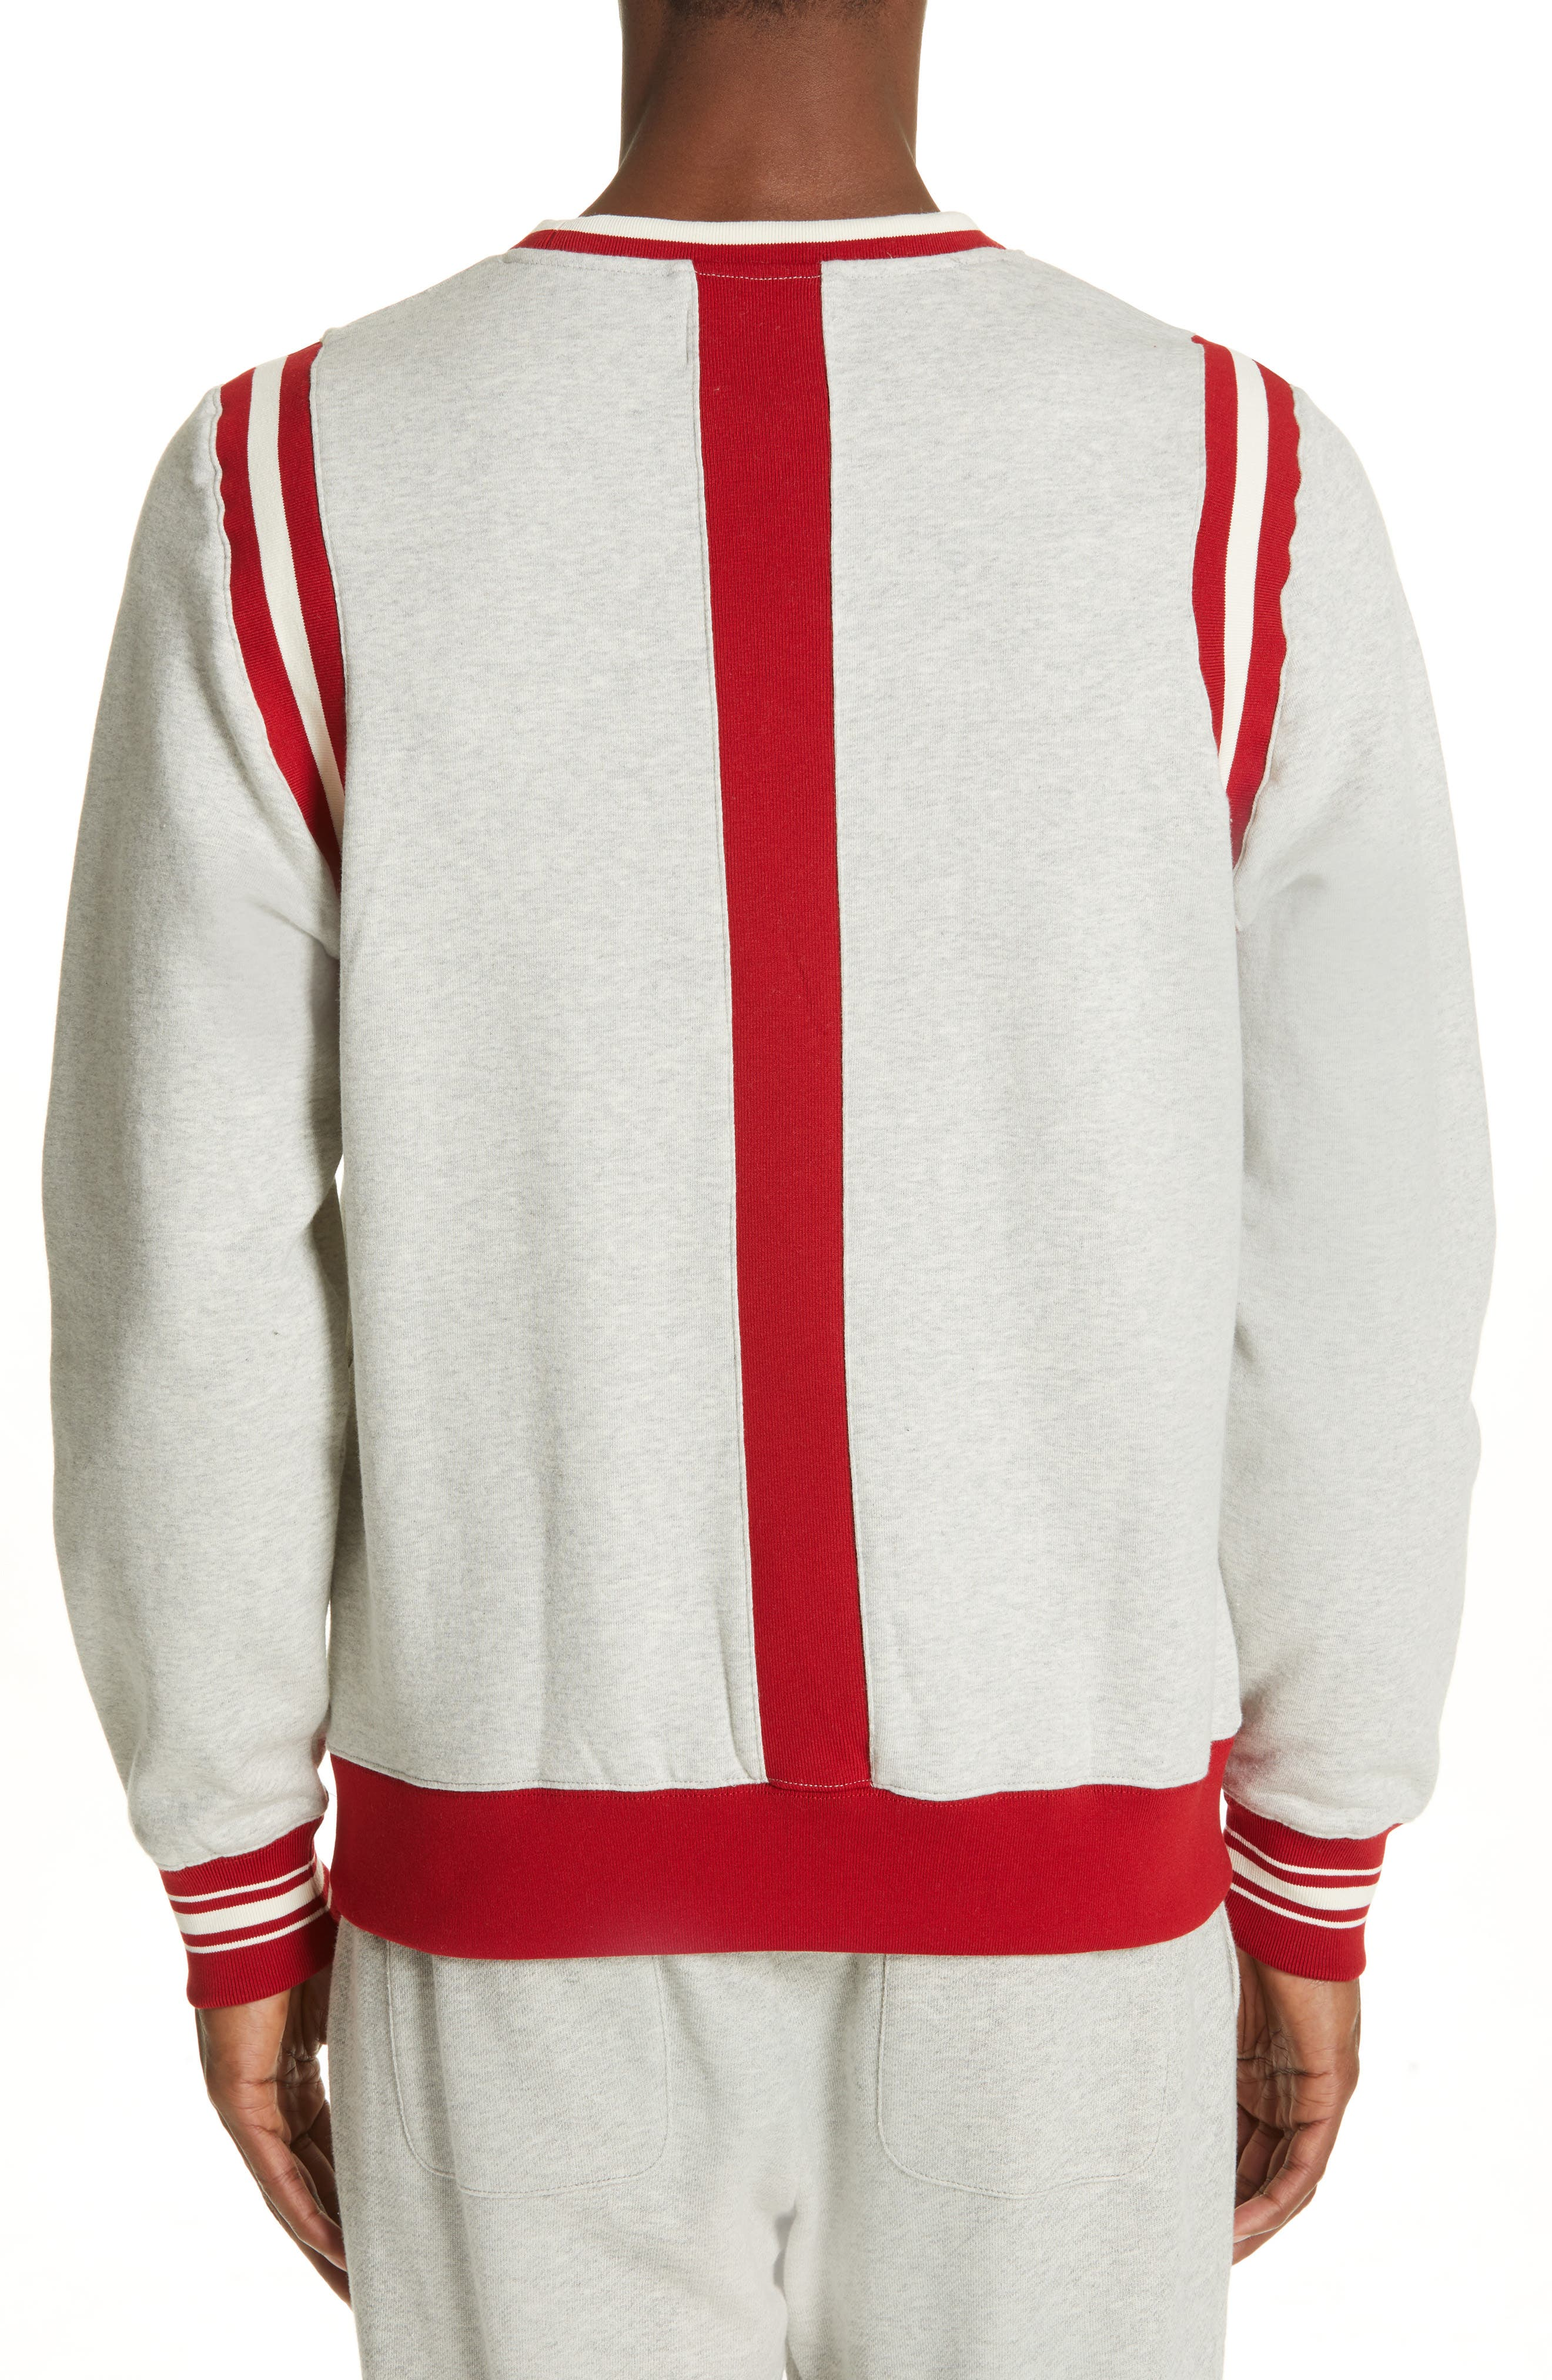 OVADIA & SONS, Varsity Sweatshirt, Alternate thumbnail 2, color, HEATHER GREY/RED